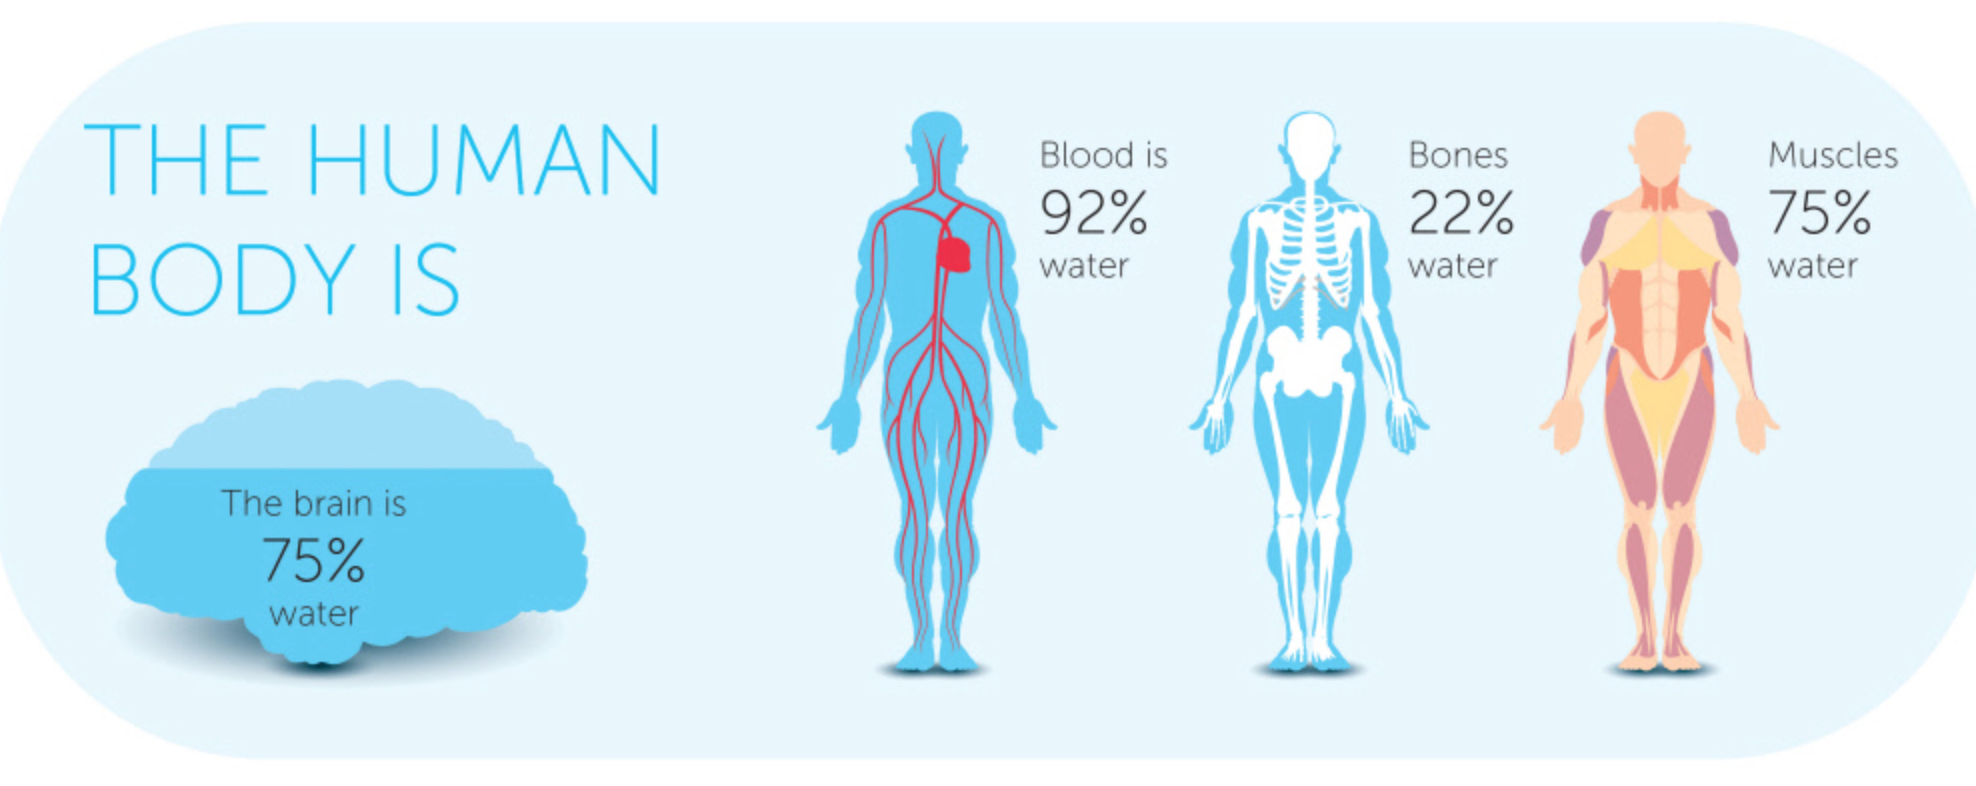 8 glasses per day is a myth: the truth about hydration - crew blog, Muscles